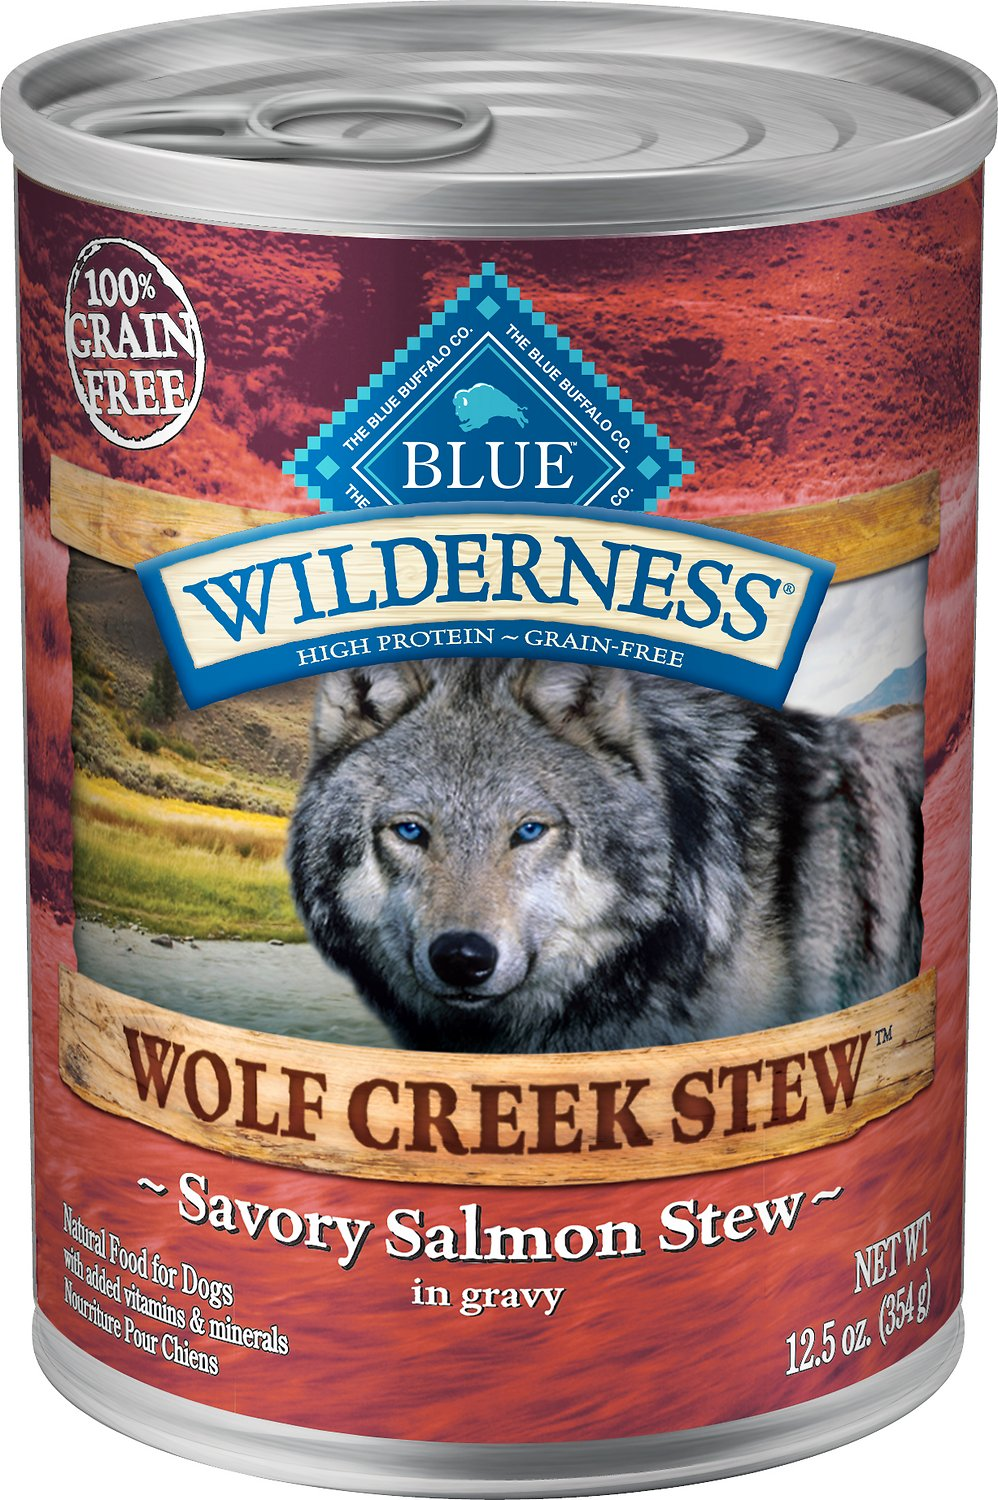 Blue Buffalo Wilderness Wolf Creek Stew Savory Salmon Stew Grain-Free Adult Canned Dog Food Image